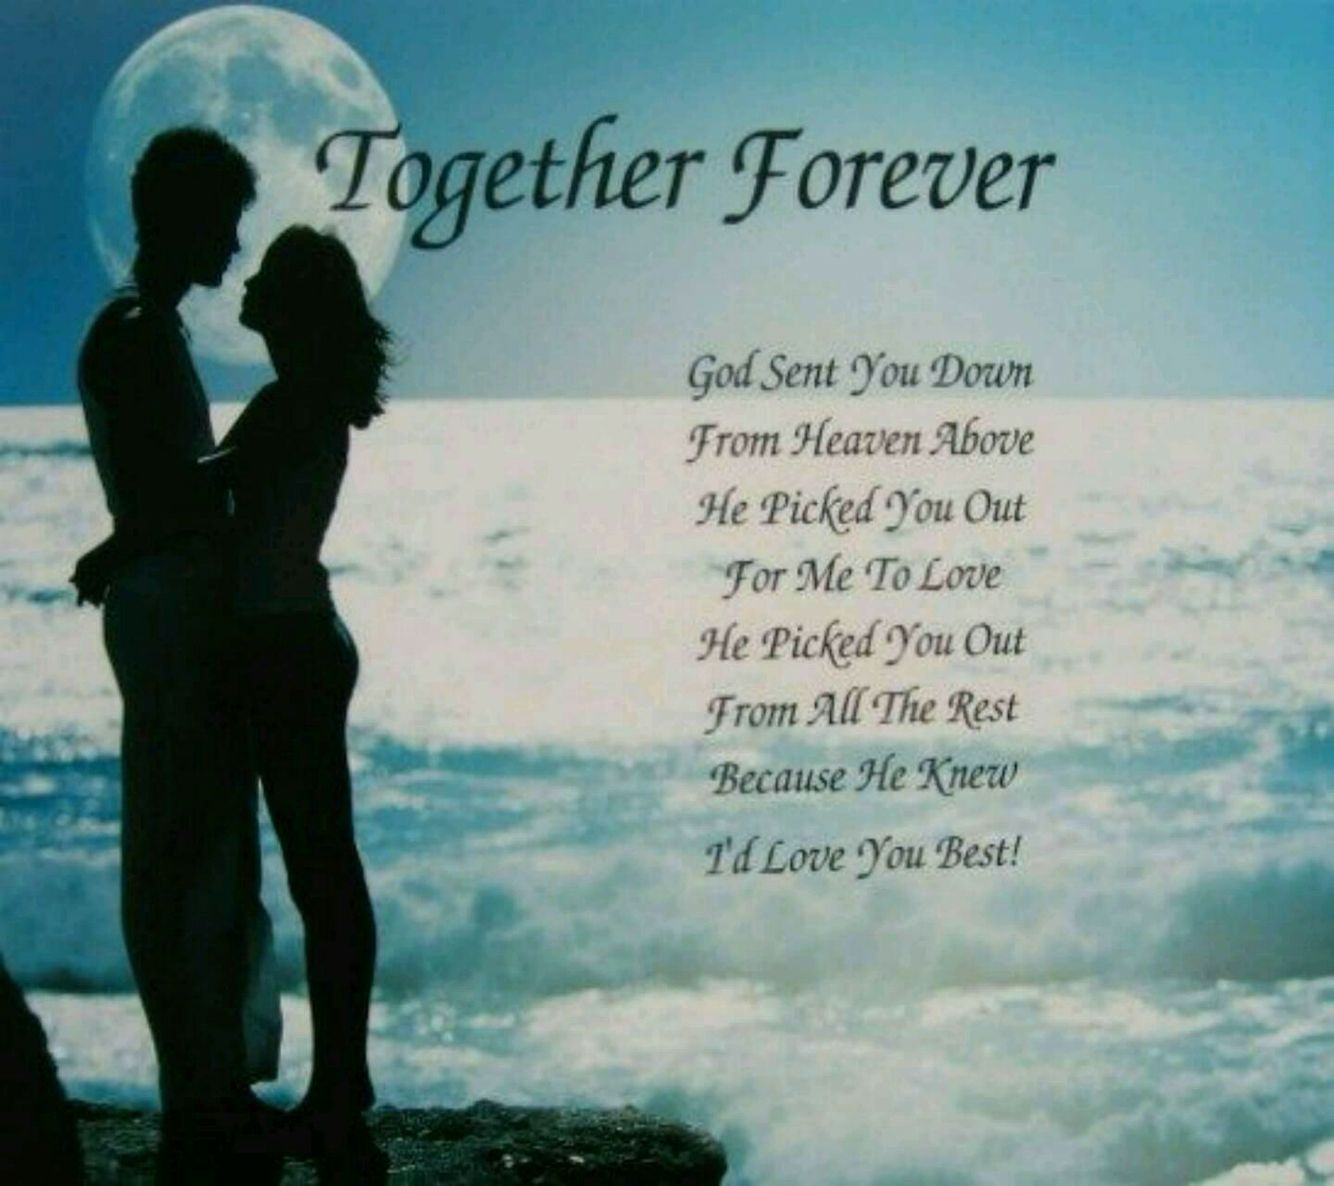 Together forever  Happy anniversary to my husband, Great love